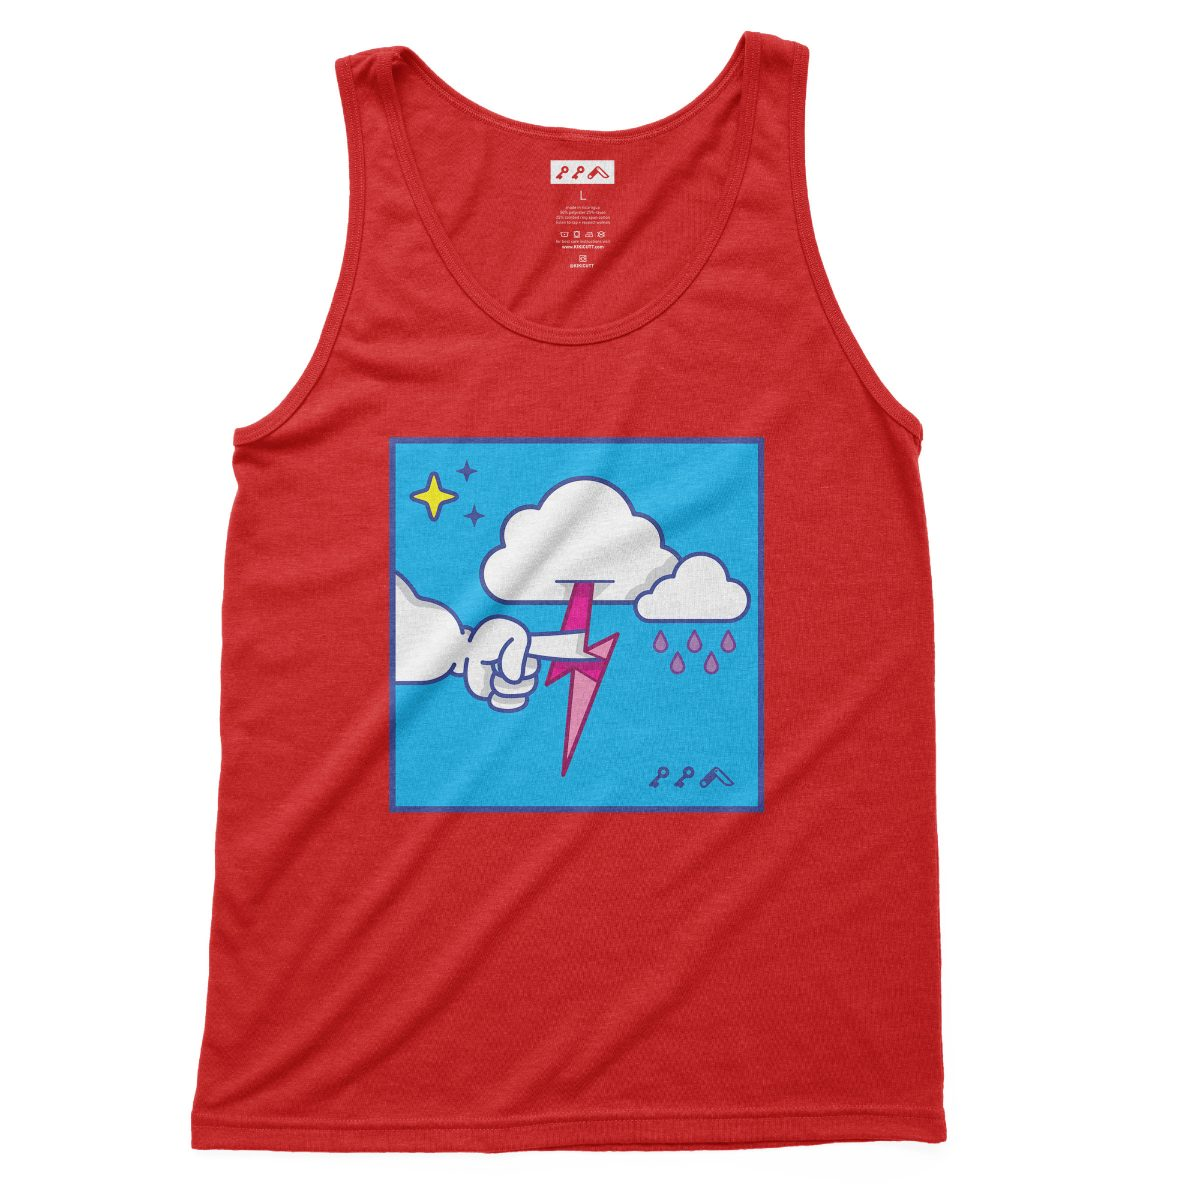 """""""MUTUAL CLOUDSENT"""" funny adult cartoon animation style tank top in red at kikicutt.com"""